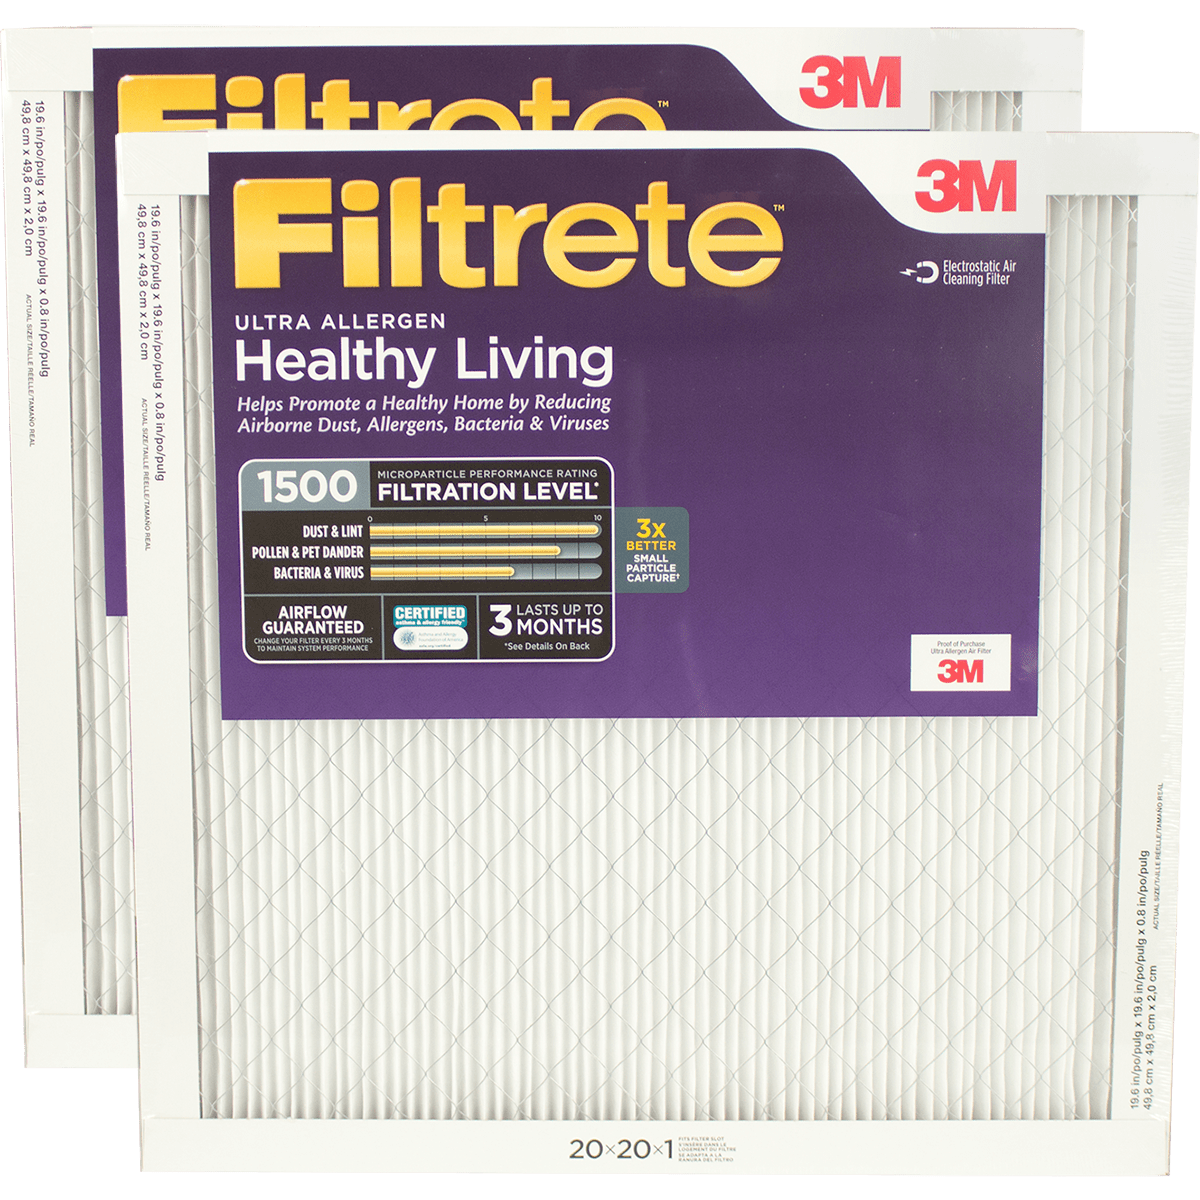 3M Filtrete Healthy Living 1500 MPR Ultra Allergen Reduction Filters, 1 Inch fi5351